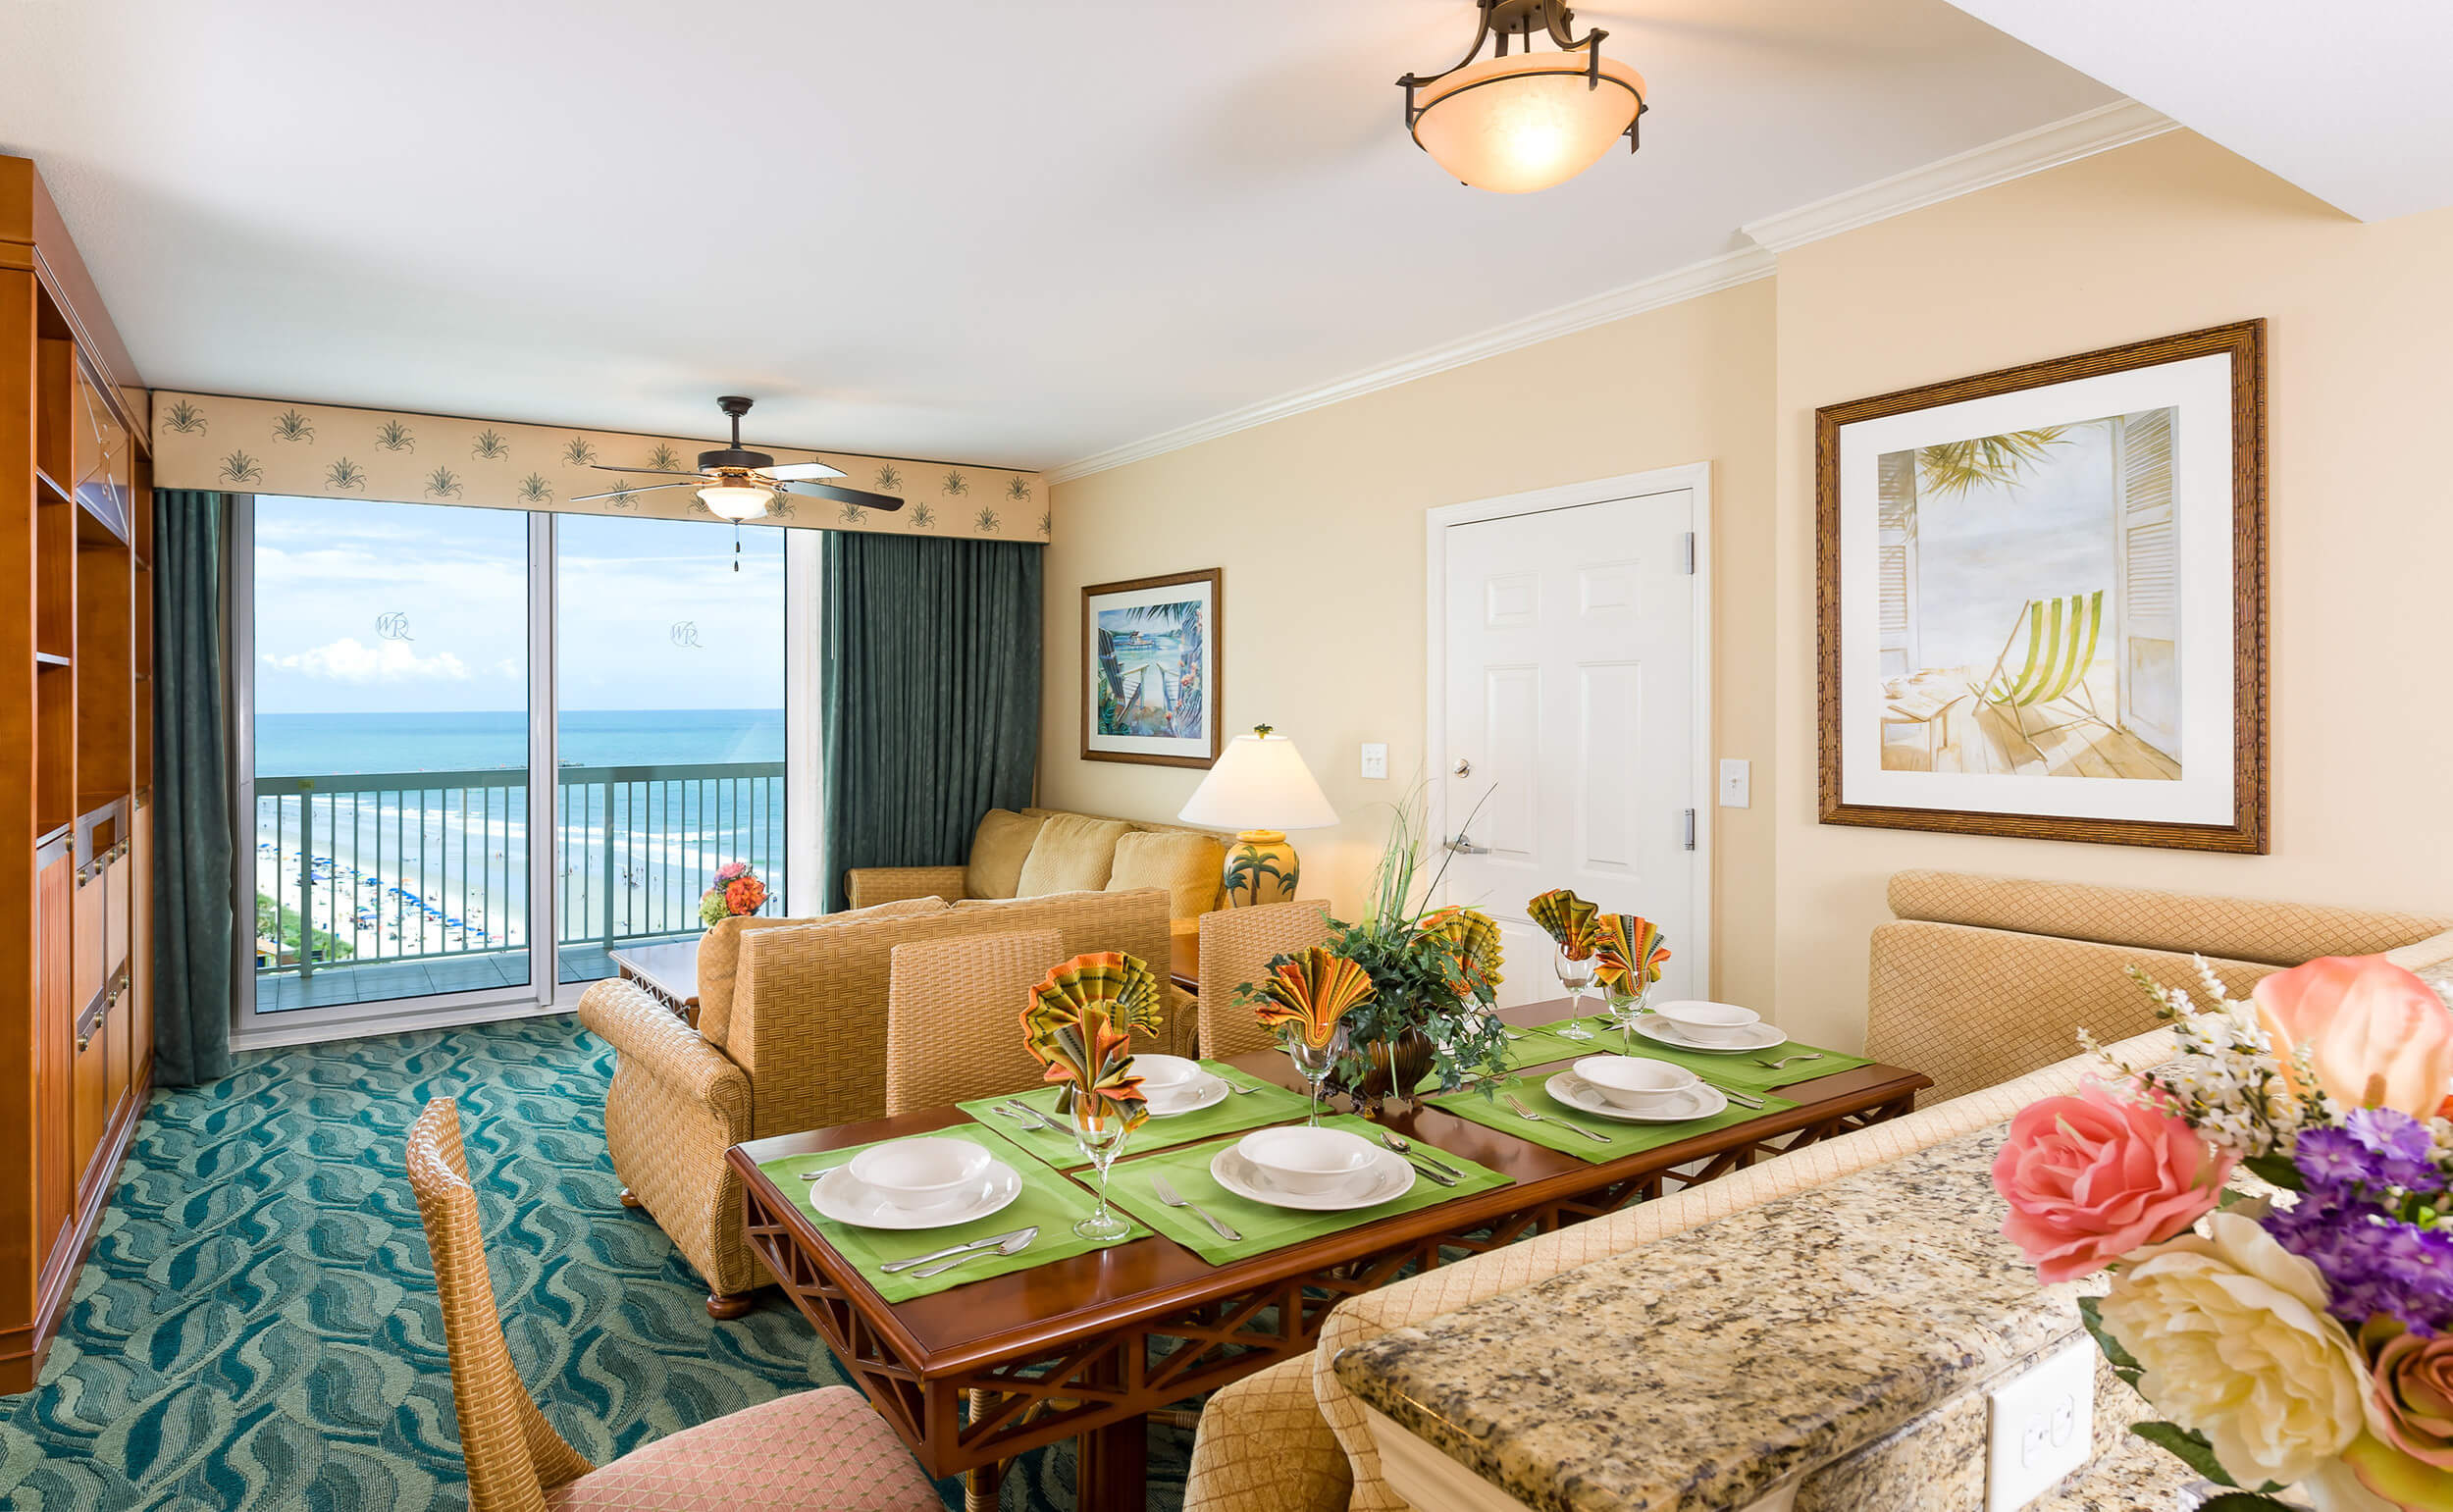 Westgate myrtle beach oceanfront resort resorts in - 4 bedroom resorts in myrtle beach sc ...